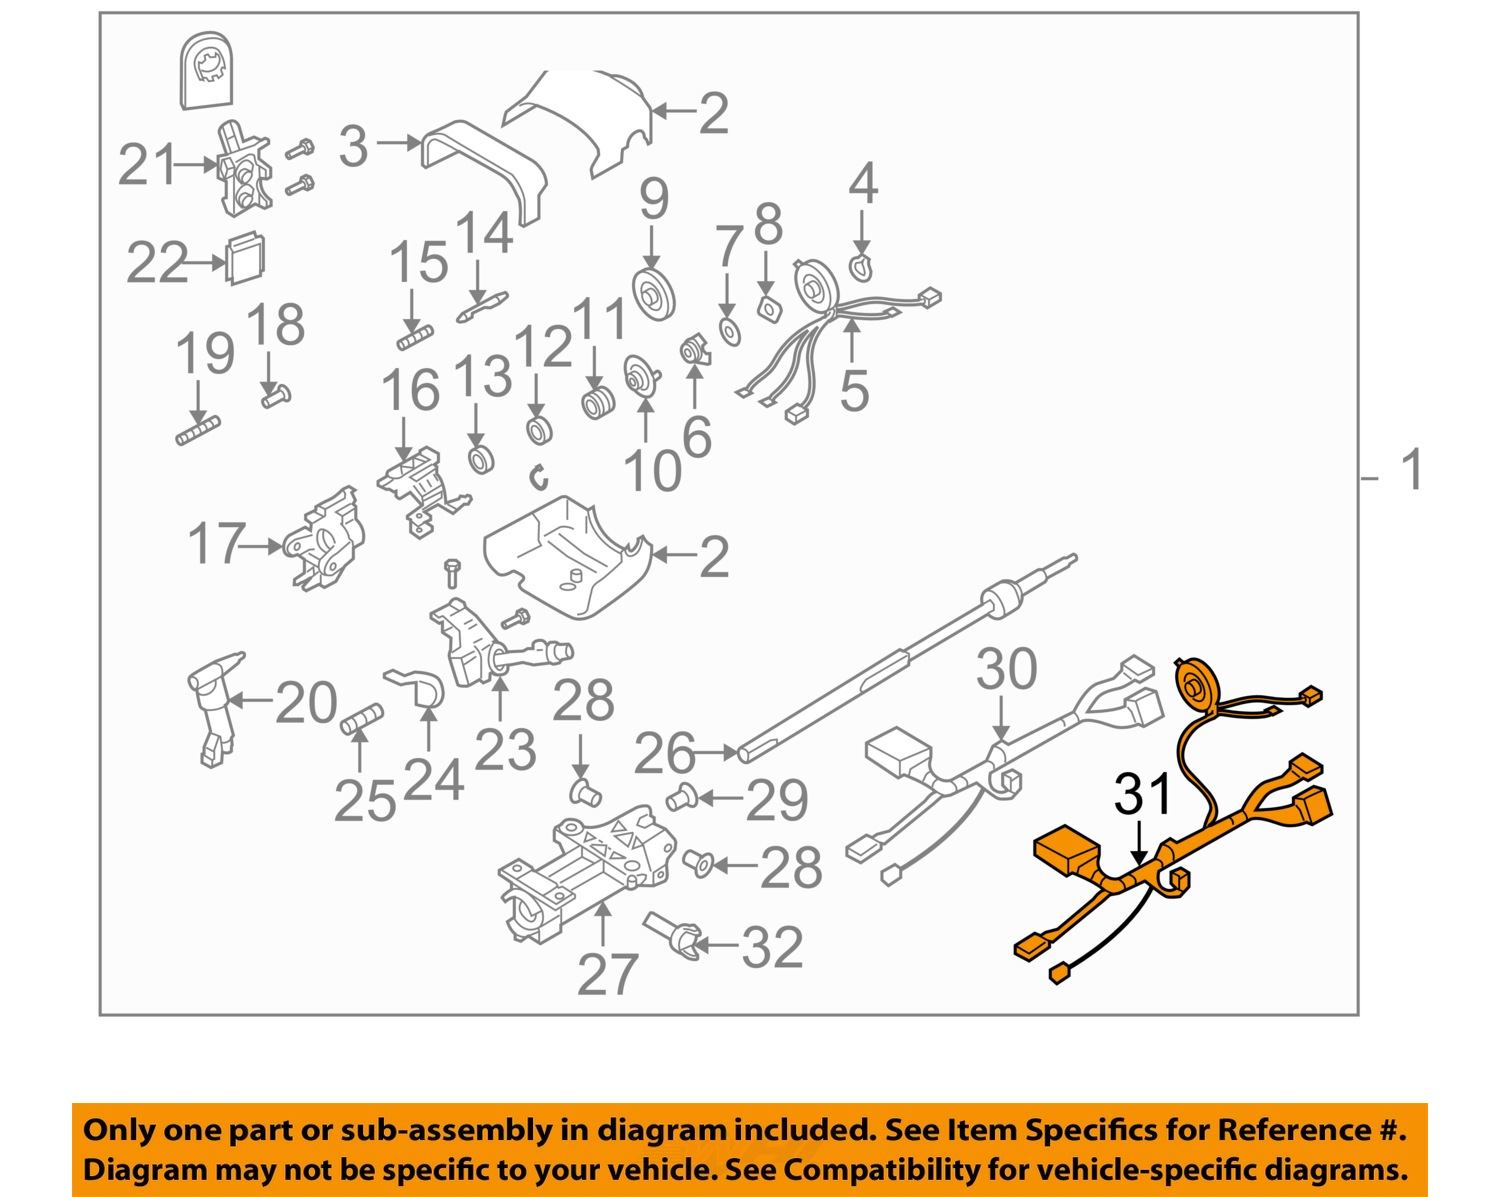 buick gm oem 04 06 rainier steering column wire harness 26105770 buick gm oem 04 06 rainier steering column wire harness 26105770